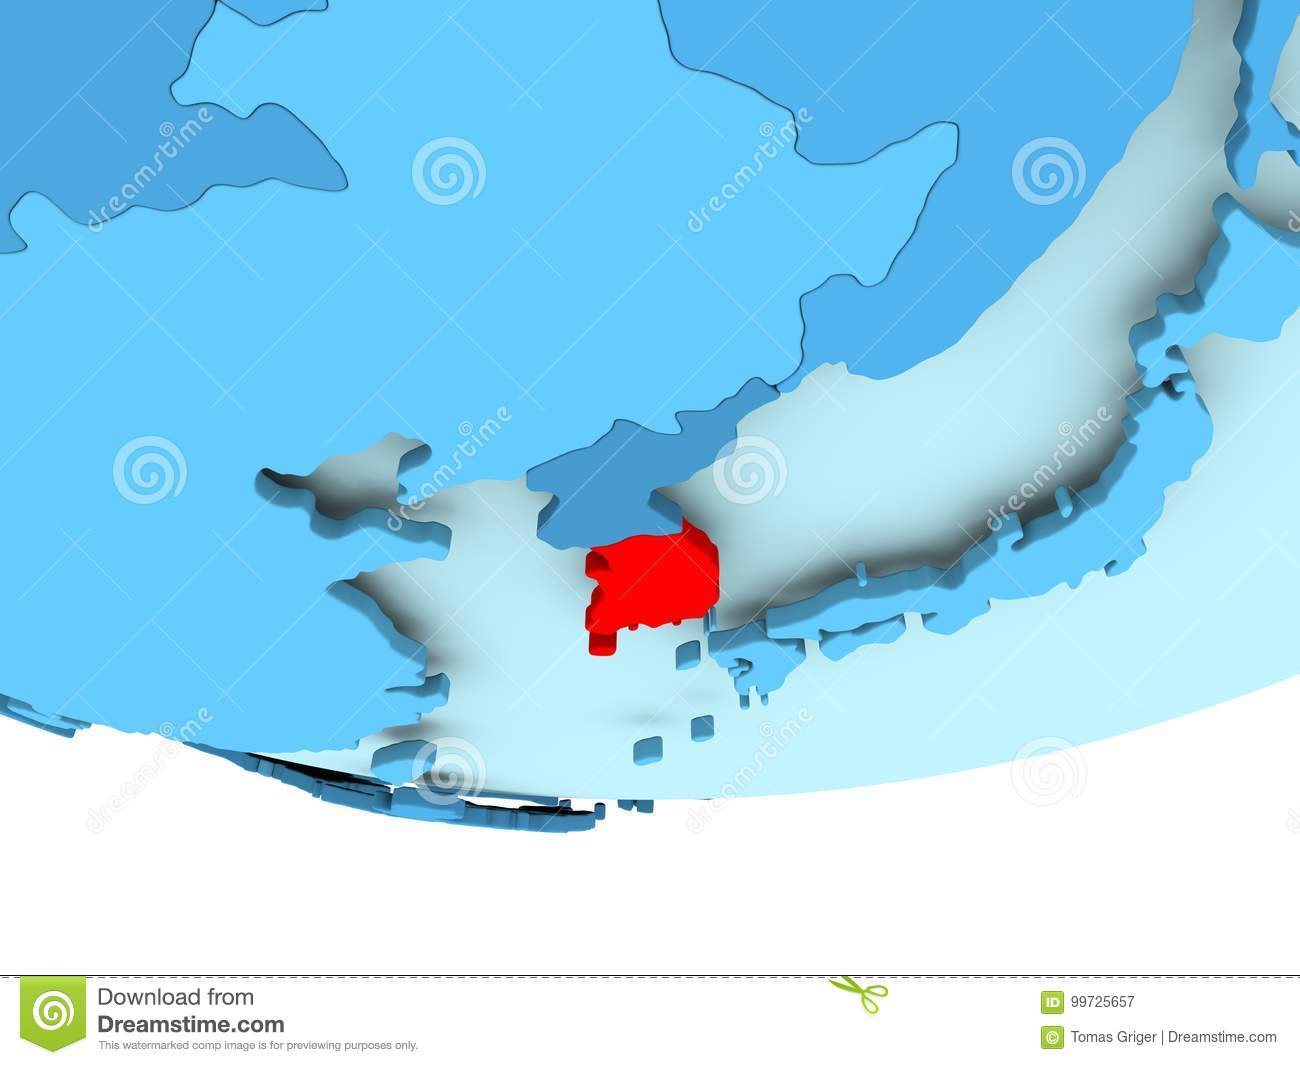 South korea in red on blue map stock illustration illustration of download south korea in red on blue map stock illustration illustration of blue international gumiabroncs Choice Image